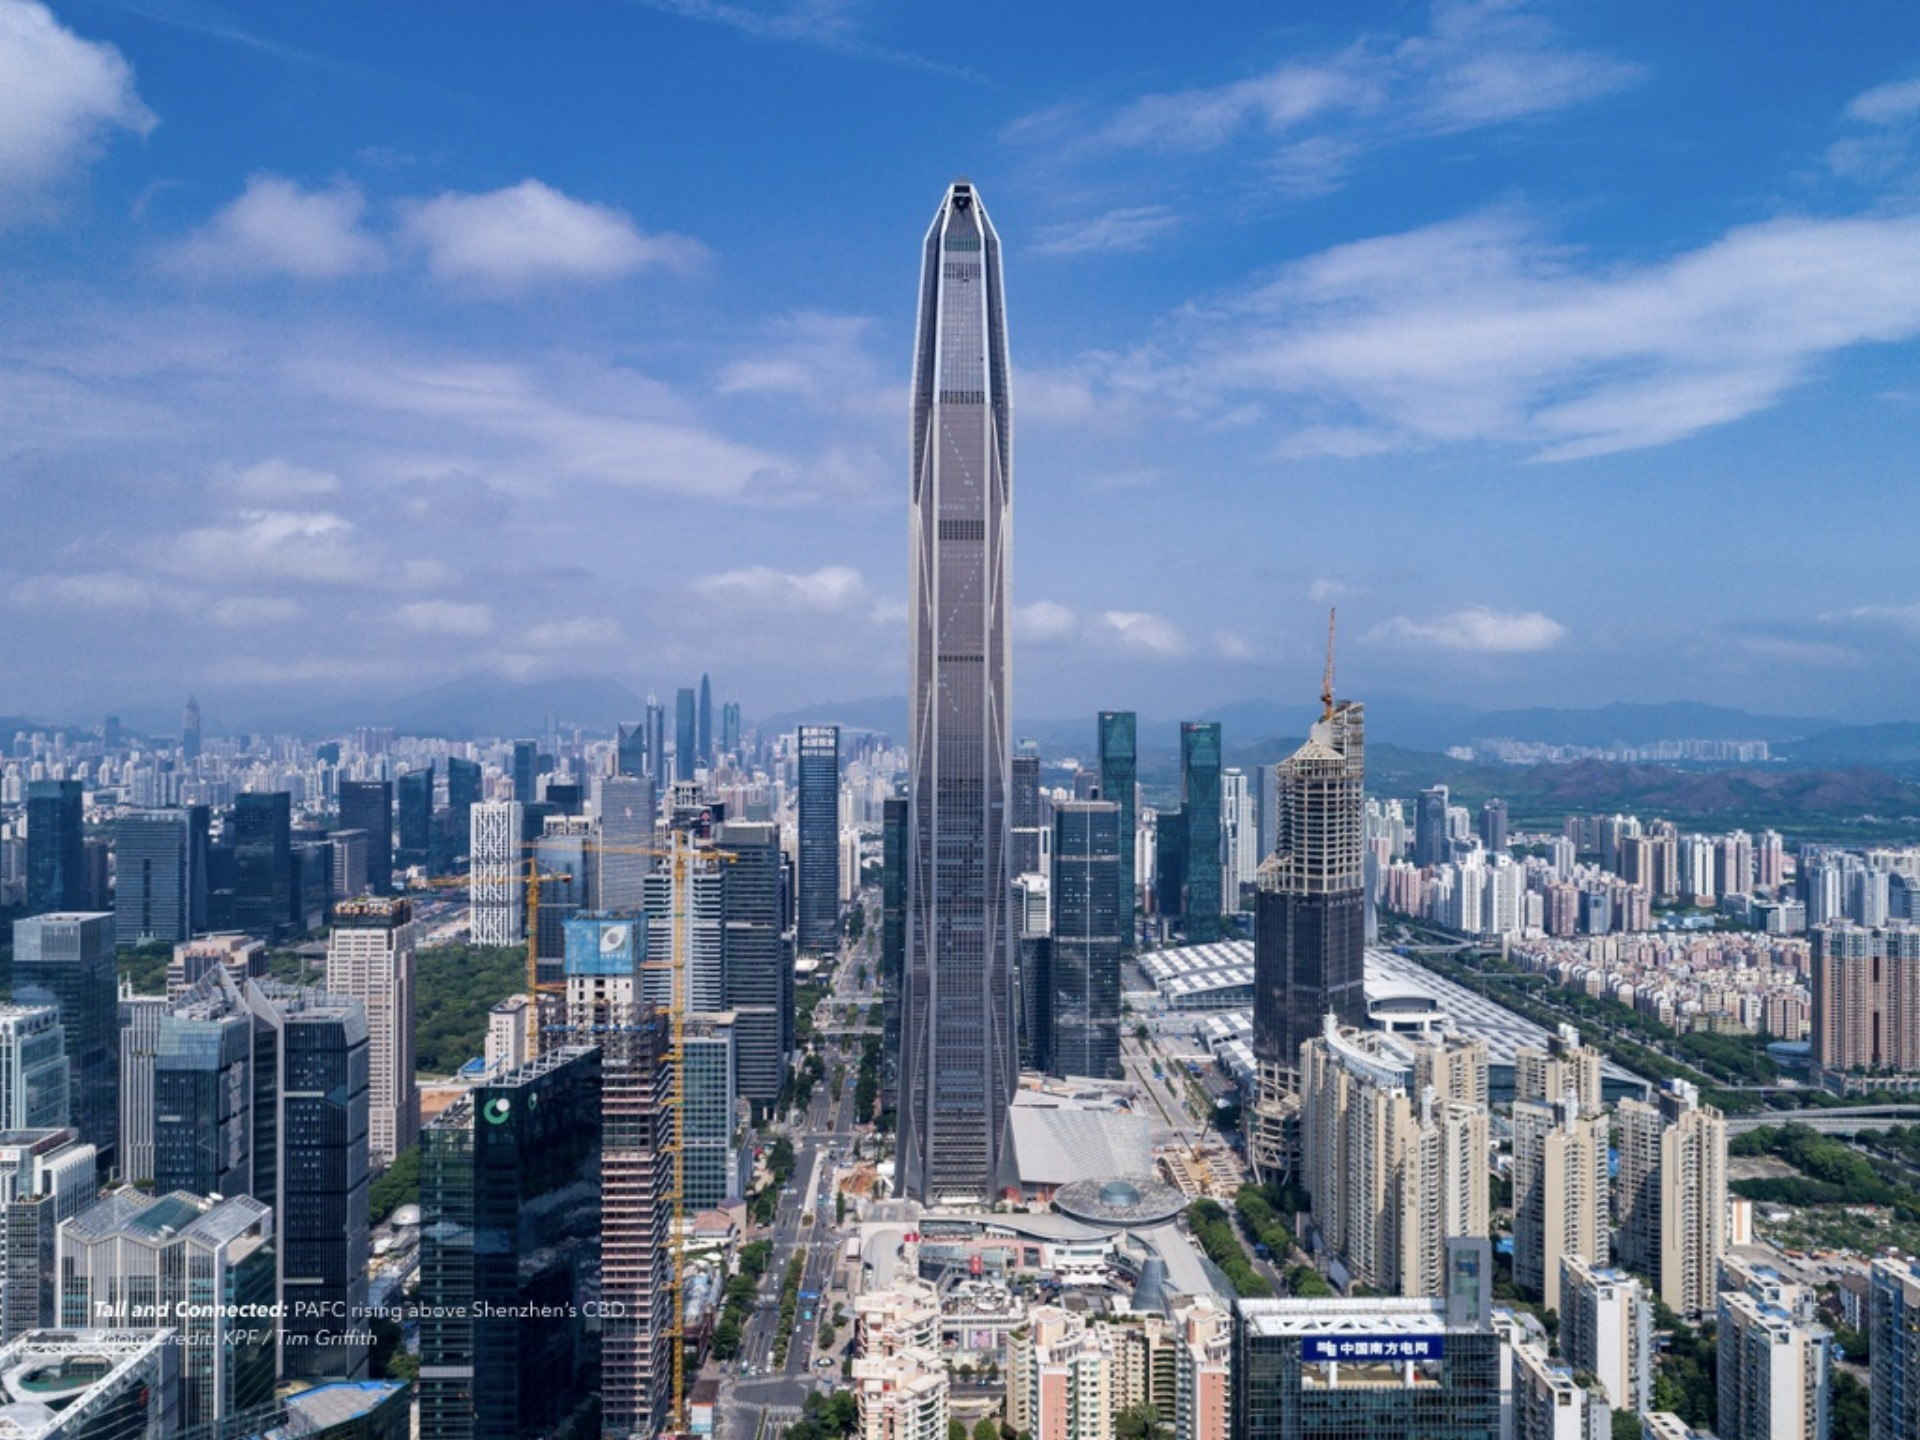 Asia and Australia's best skyscrapers at the 2018 CTBUH Awards